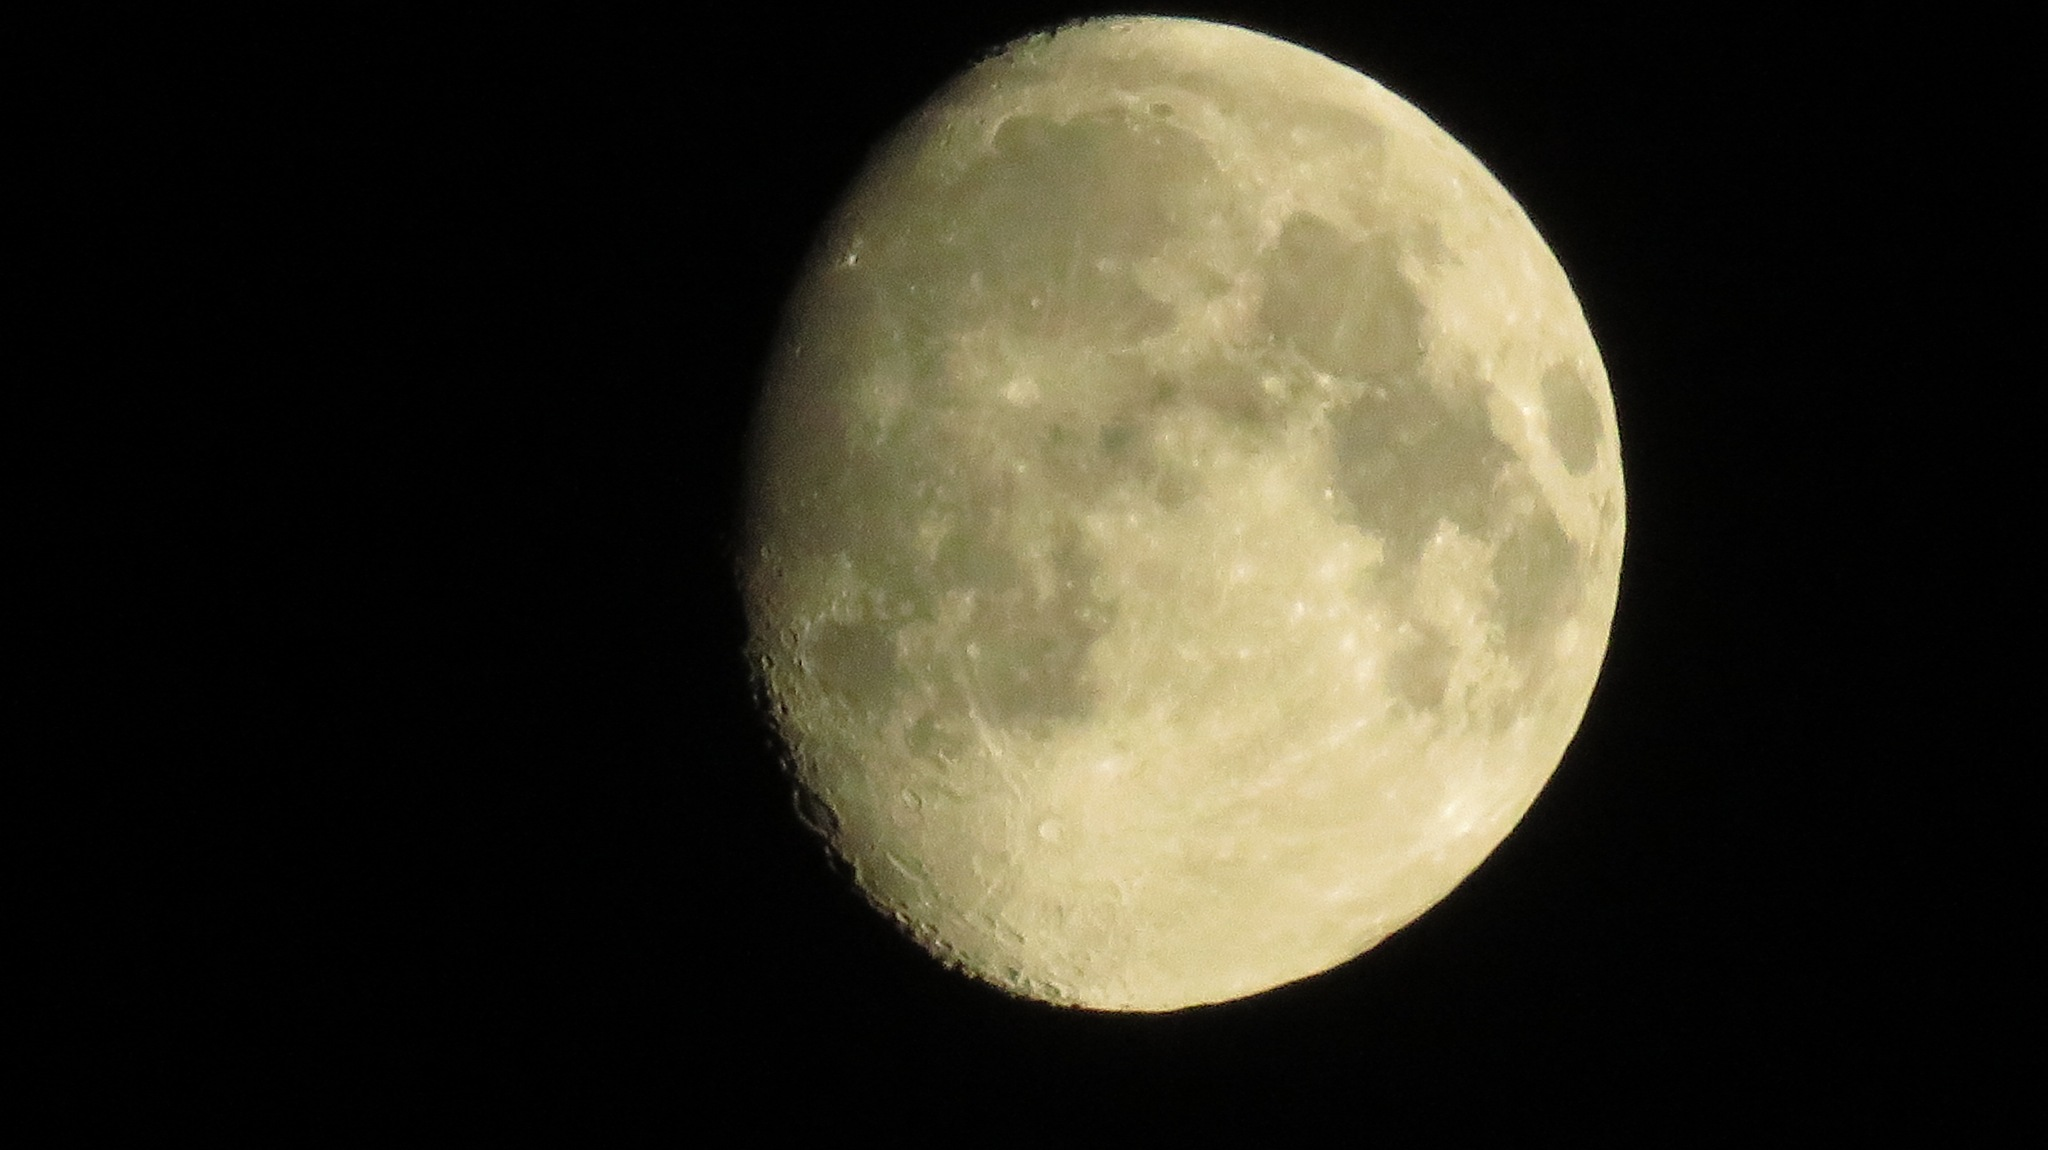 Moon by Kirston Tozer